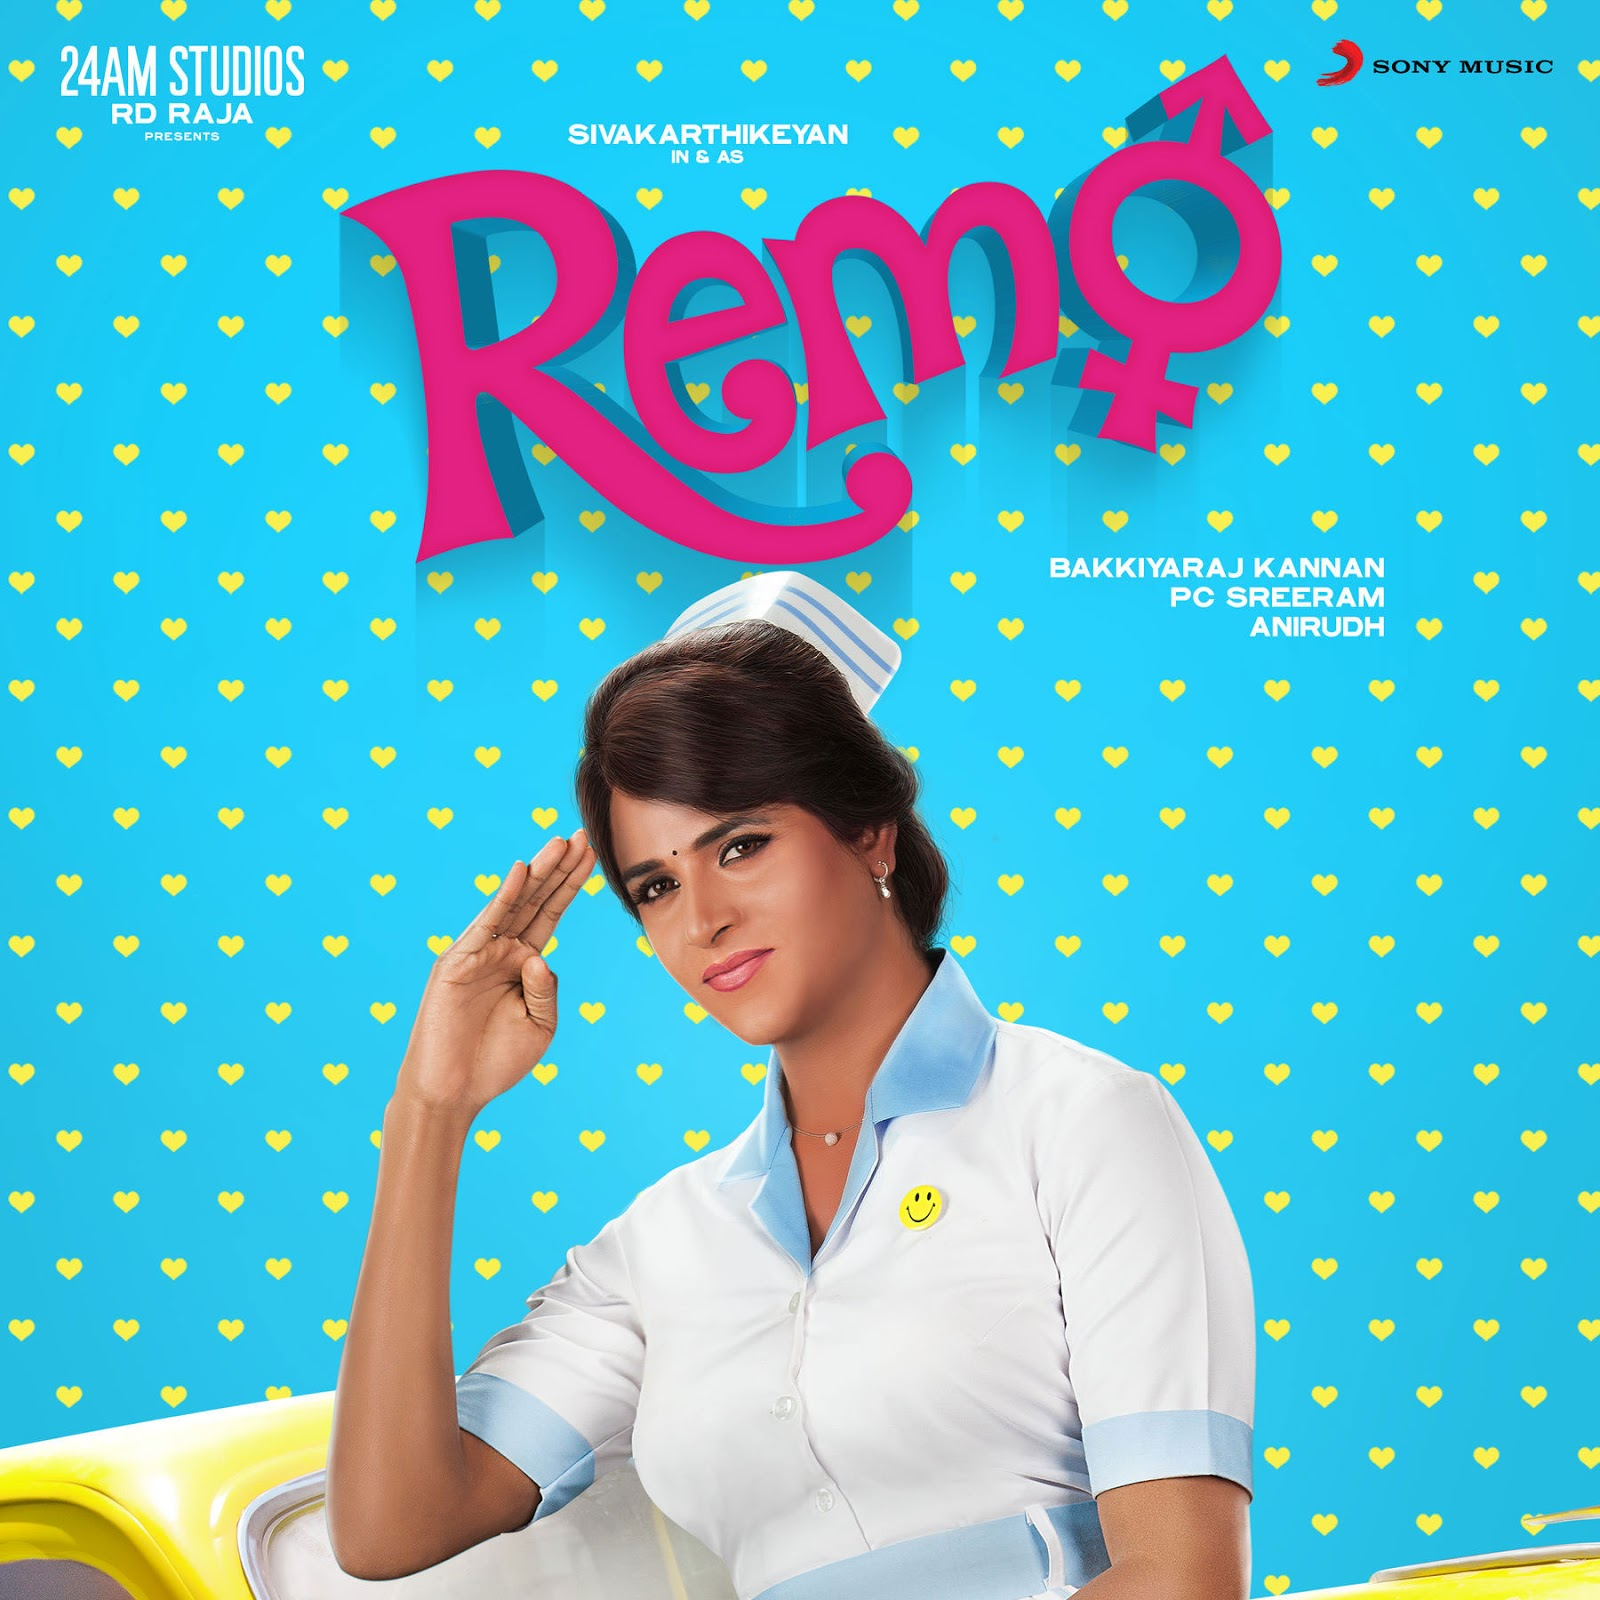 Remo-2016-Telugu-Original-CD-Front-Cover-Poster-wallpaper